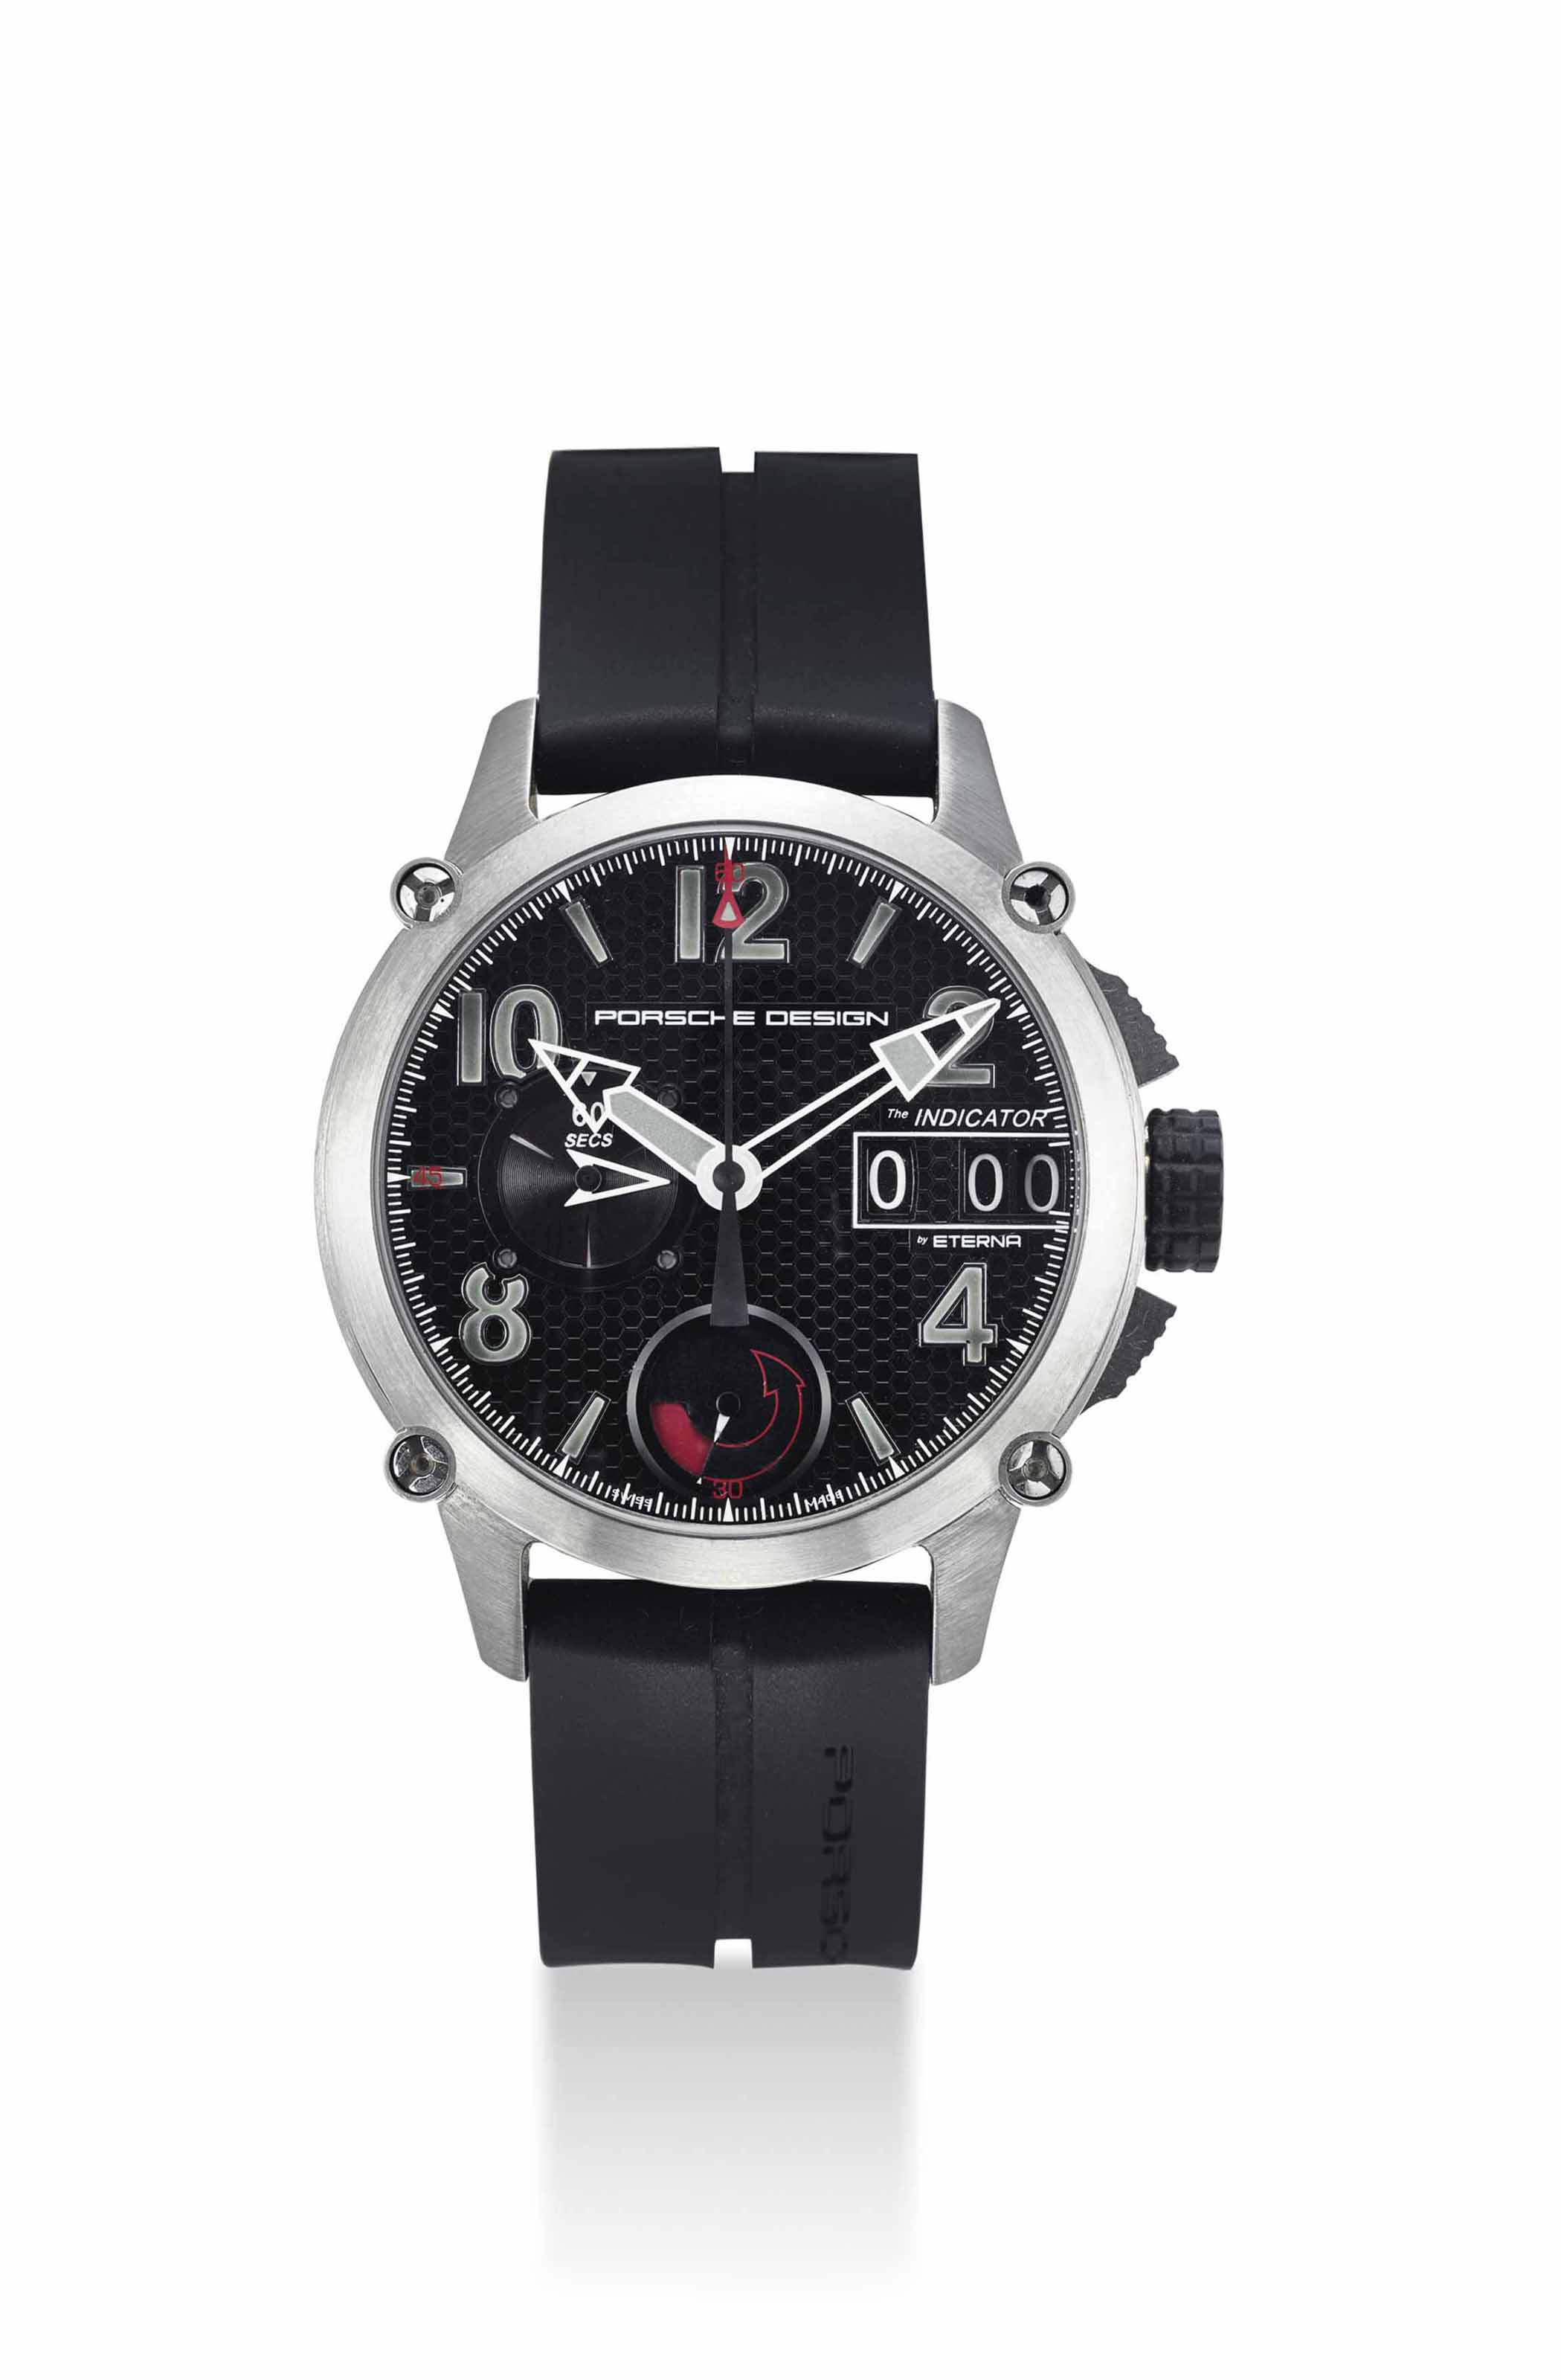 PORSCHE DESIGN. A RARE AND UNUSUAL TITANIUM AUTOMATIC CHRONOGRAPH WRISTWATCH WITH POWER RESERVE AND LARGE CHRONOGRAPH ELAPSED TIME INDICATOR